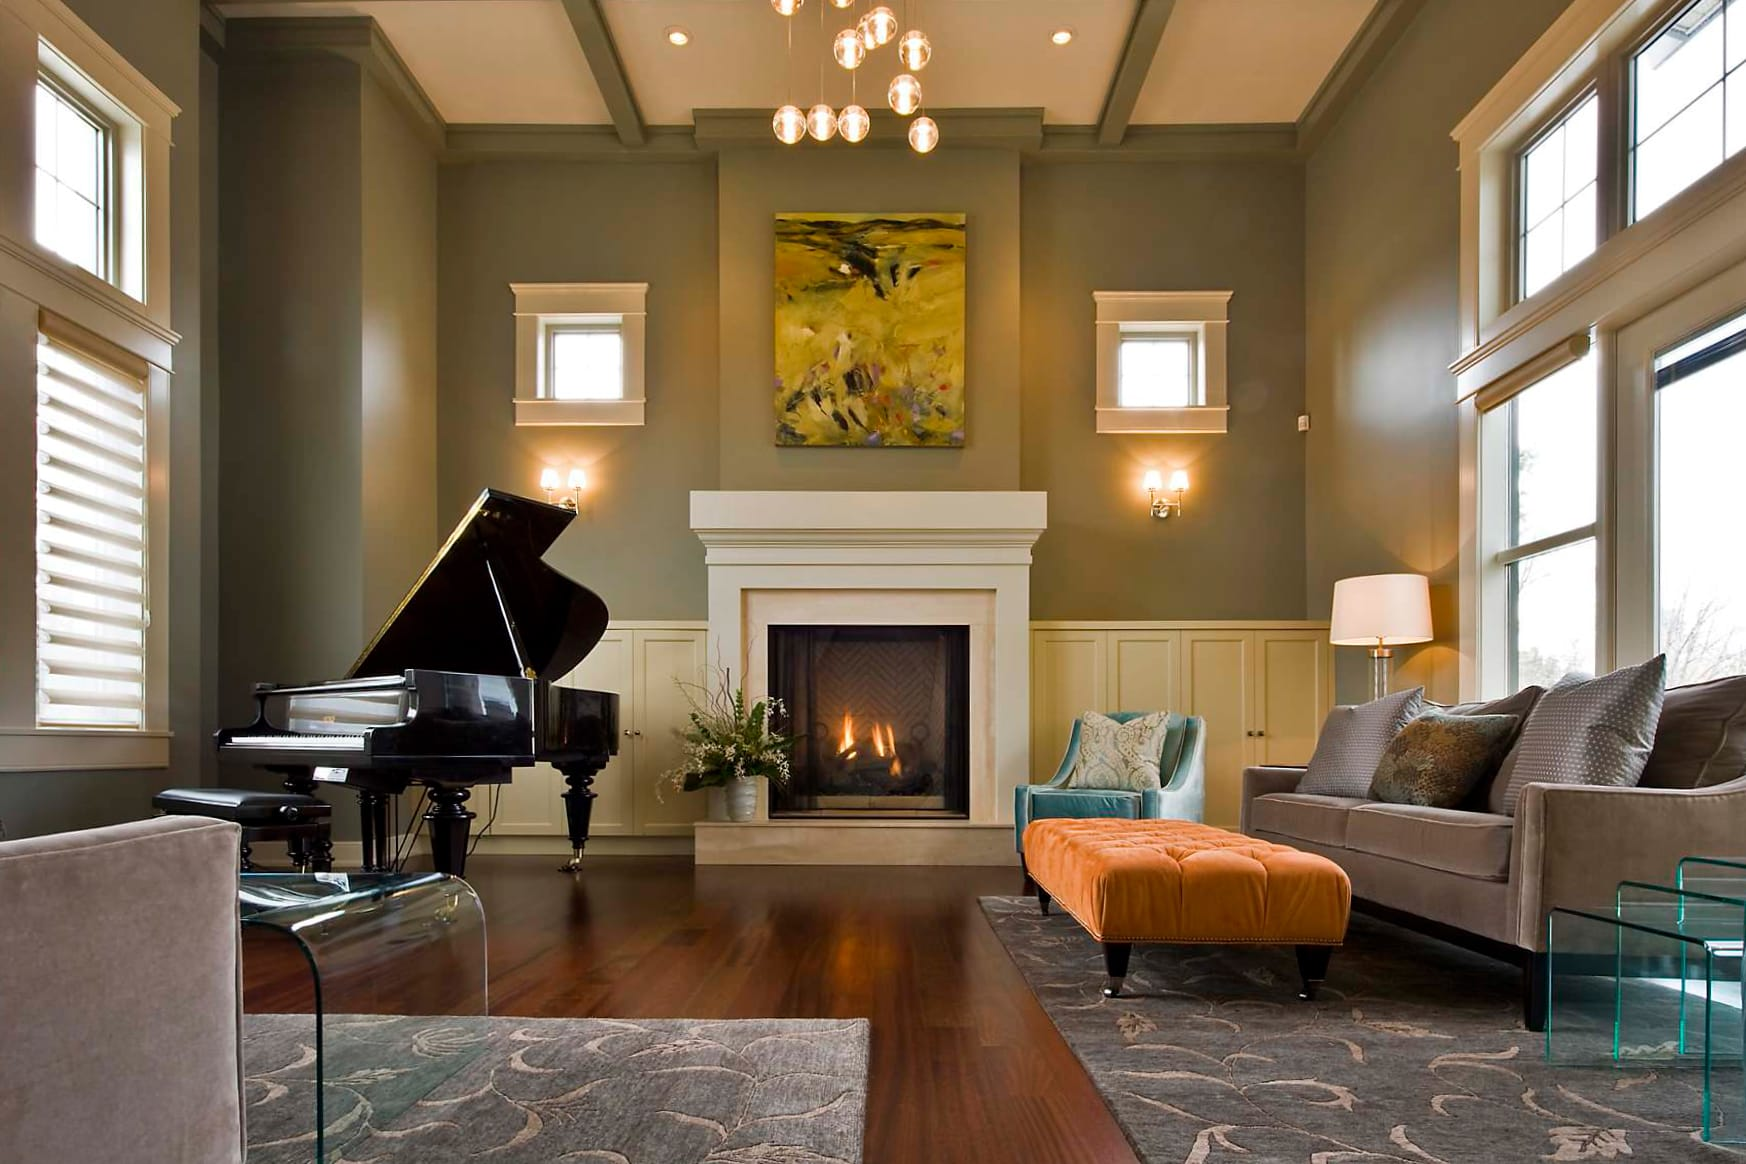 How to decorate around a piano